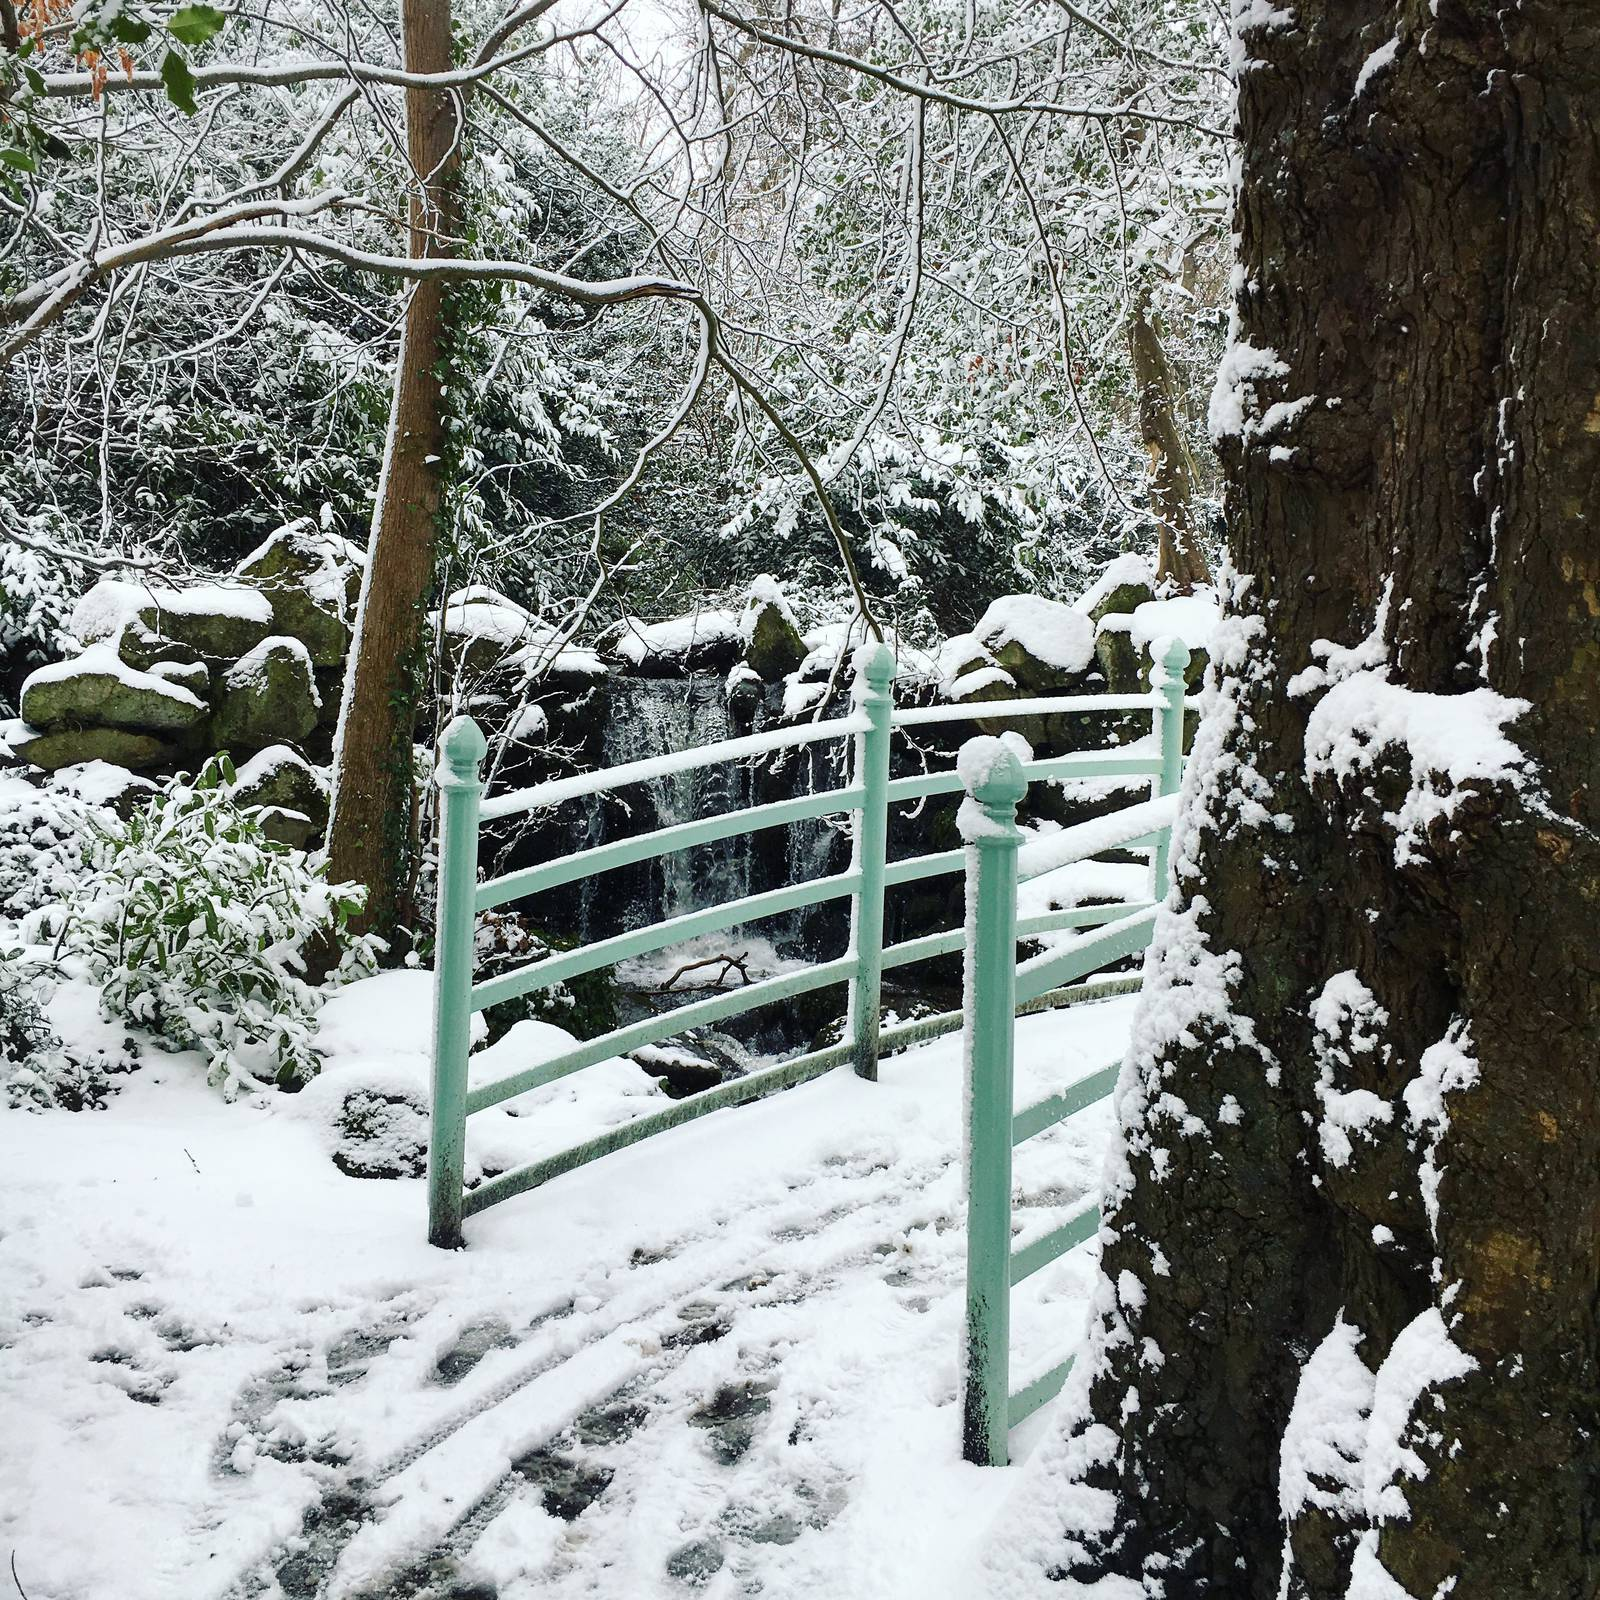 Marlay Park environs covered in snow